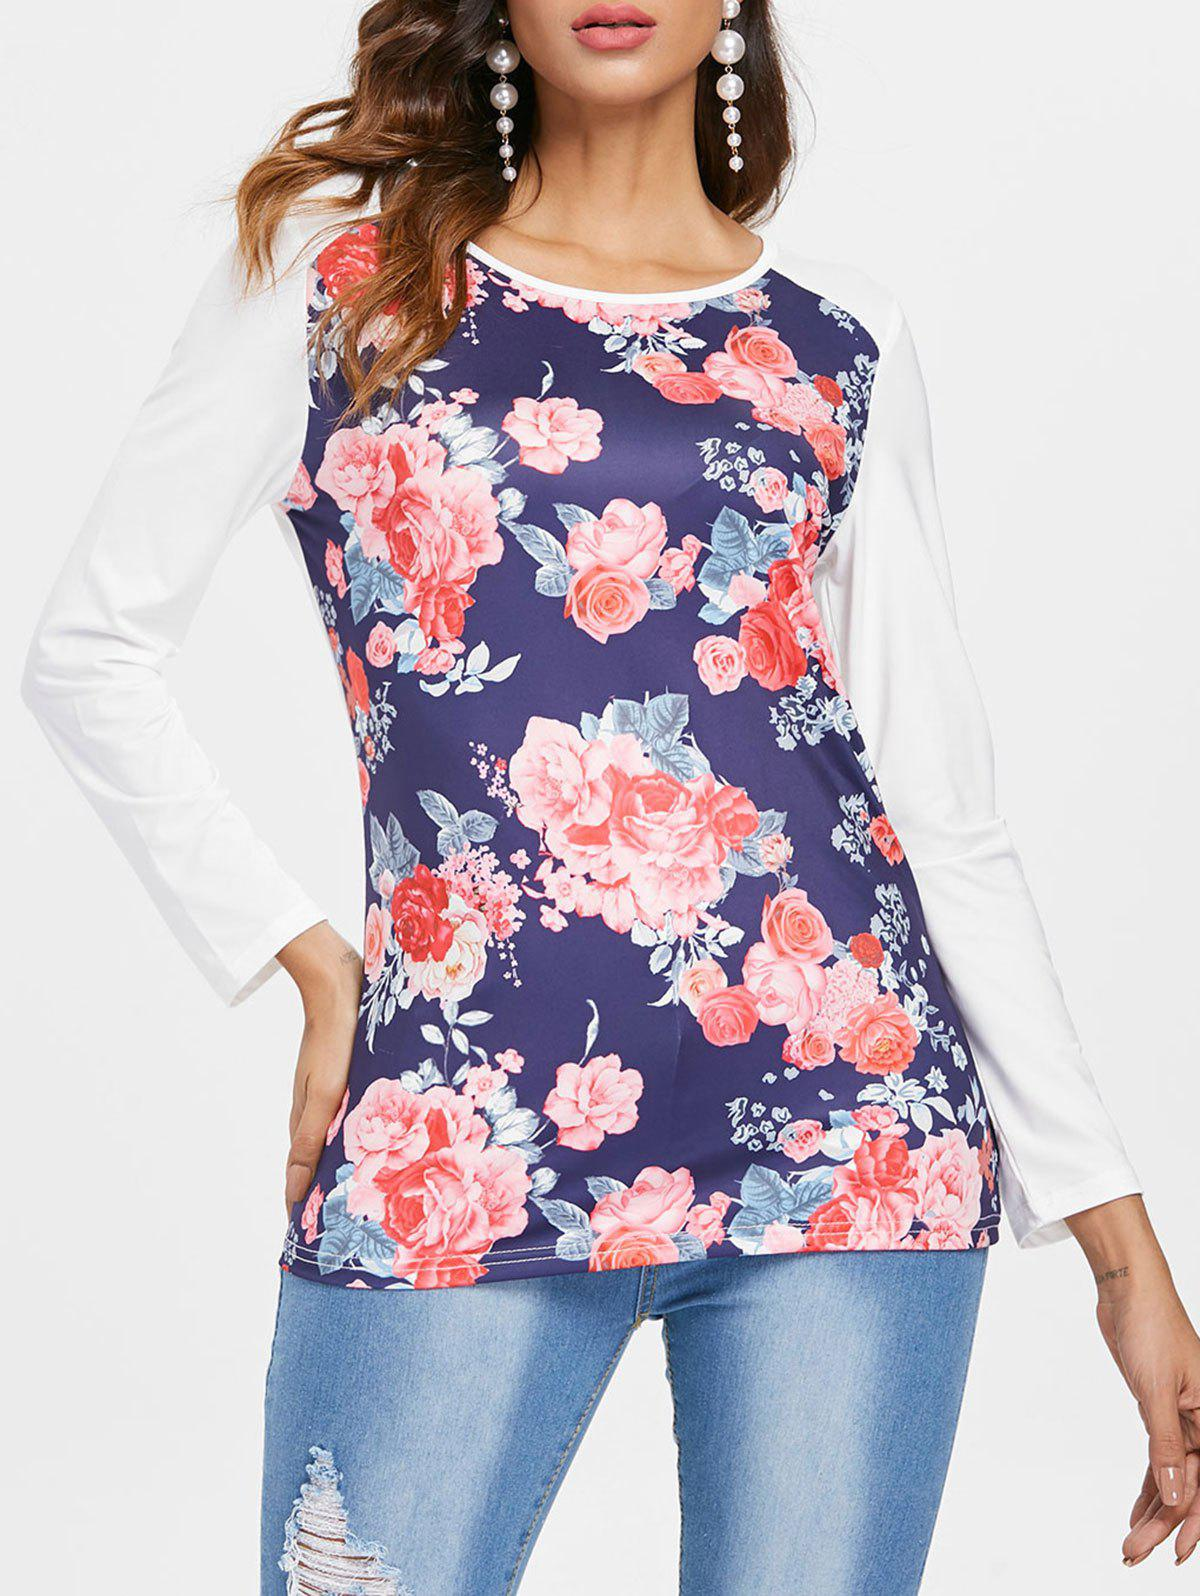 Store Floral Print T-shirt